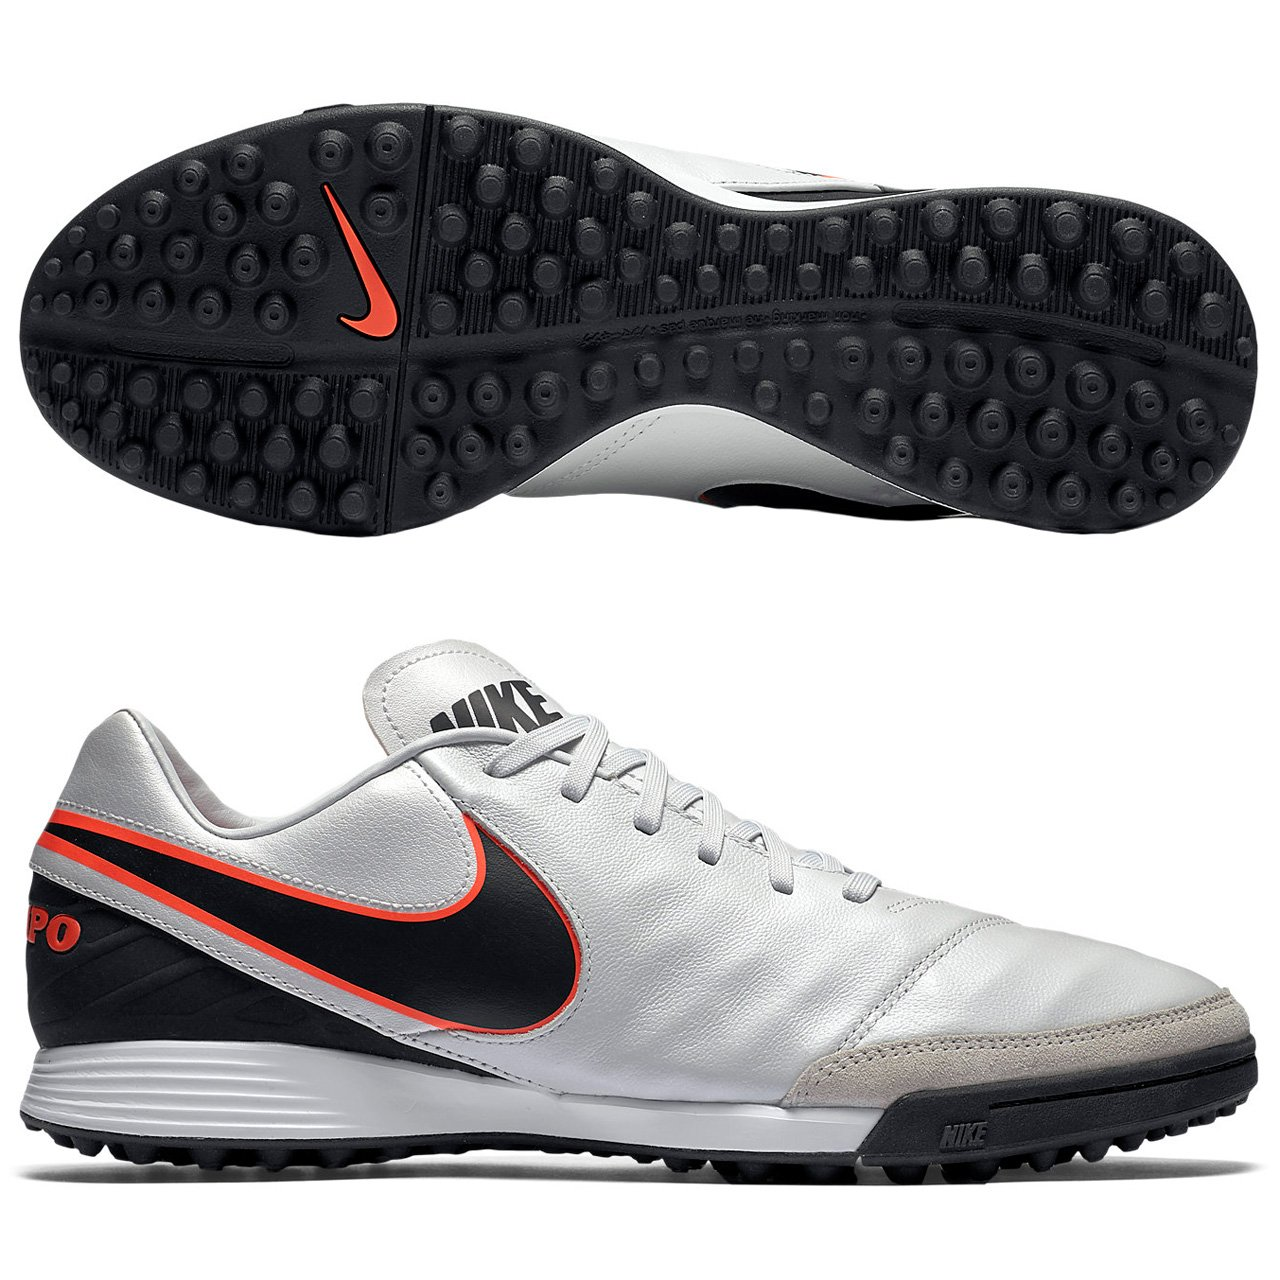 664c11ddc78 Nike Tiempo Mystic V TF Soccer Shoe Platinum Orange Sz. 6  Amazon.in  Shoes    Handbags